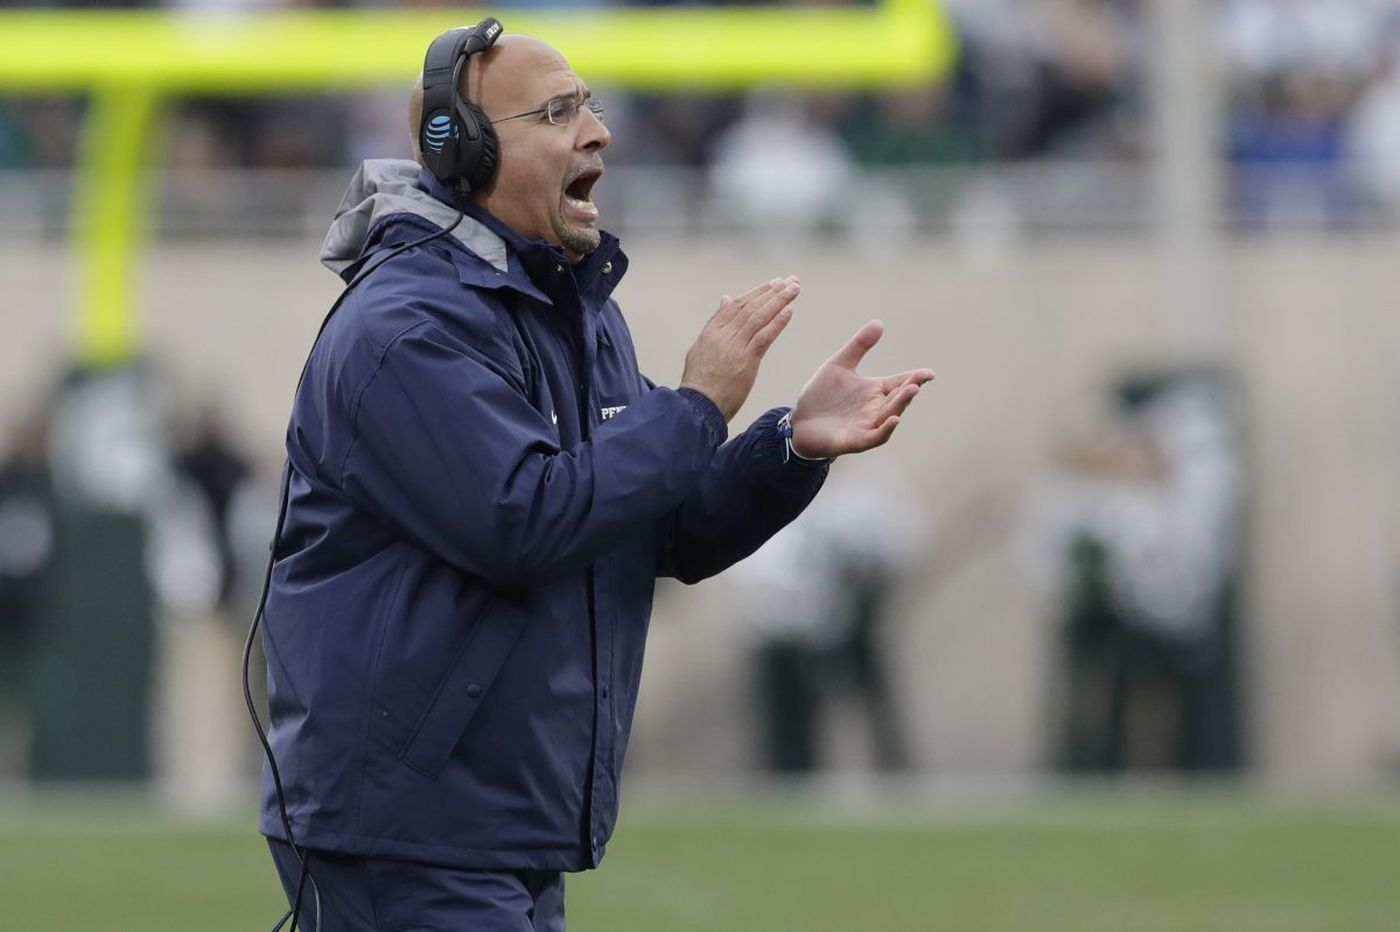 Penn State's James Franklin admits weather affected the game, but wouldn't make excuses